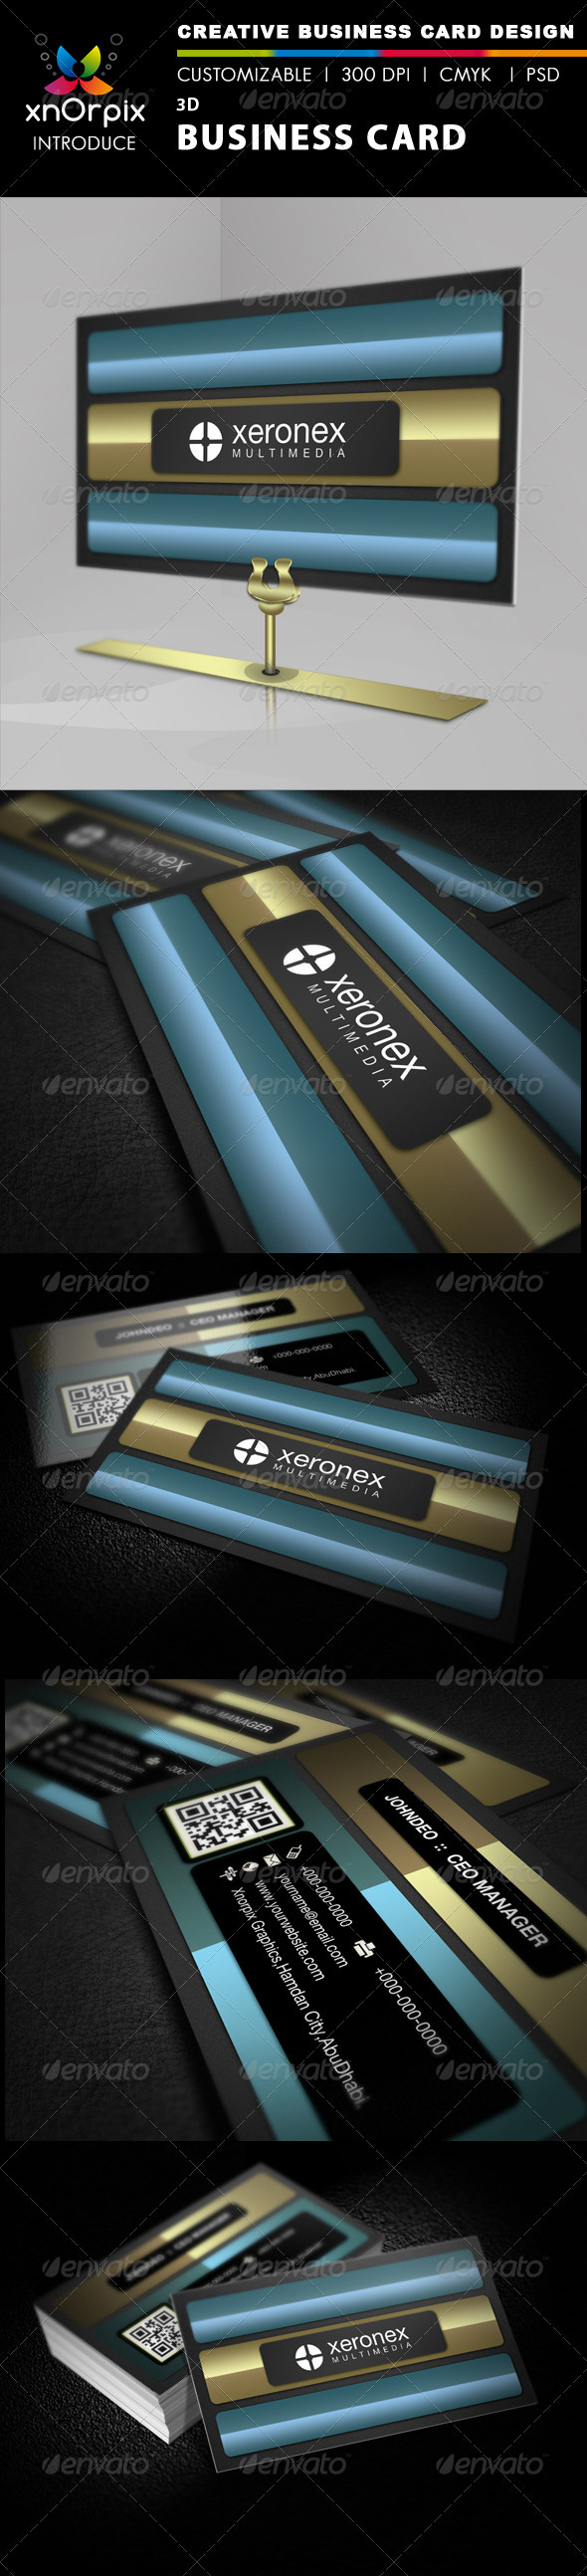 3D Business Card - Creative Business Cards